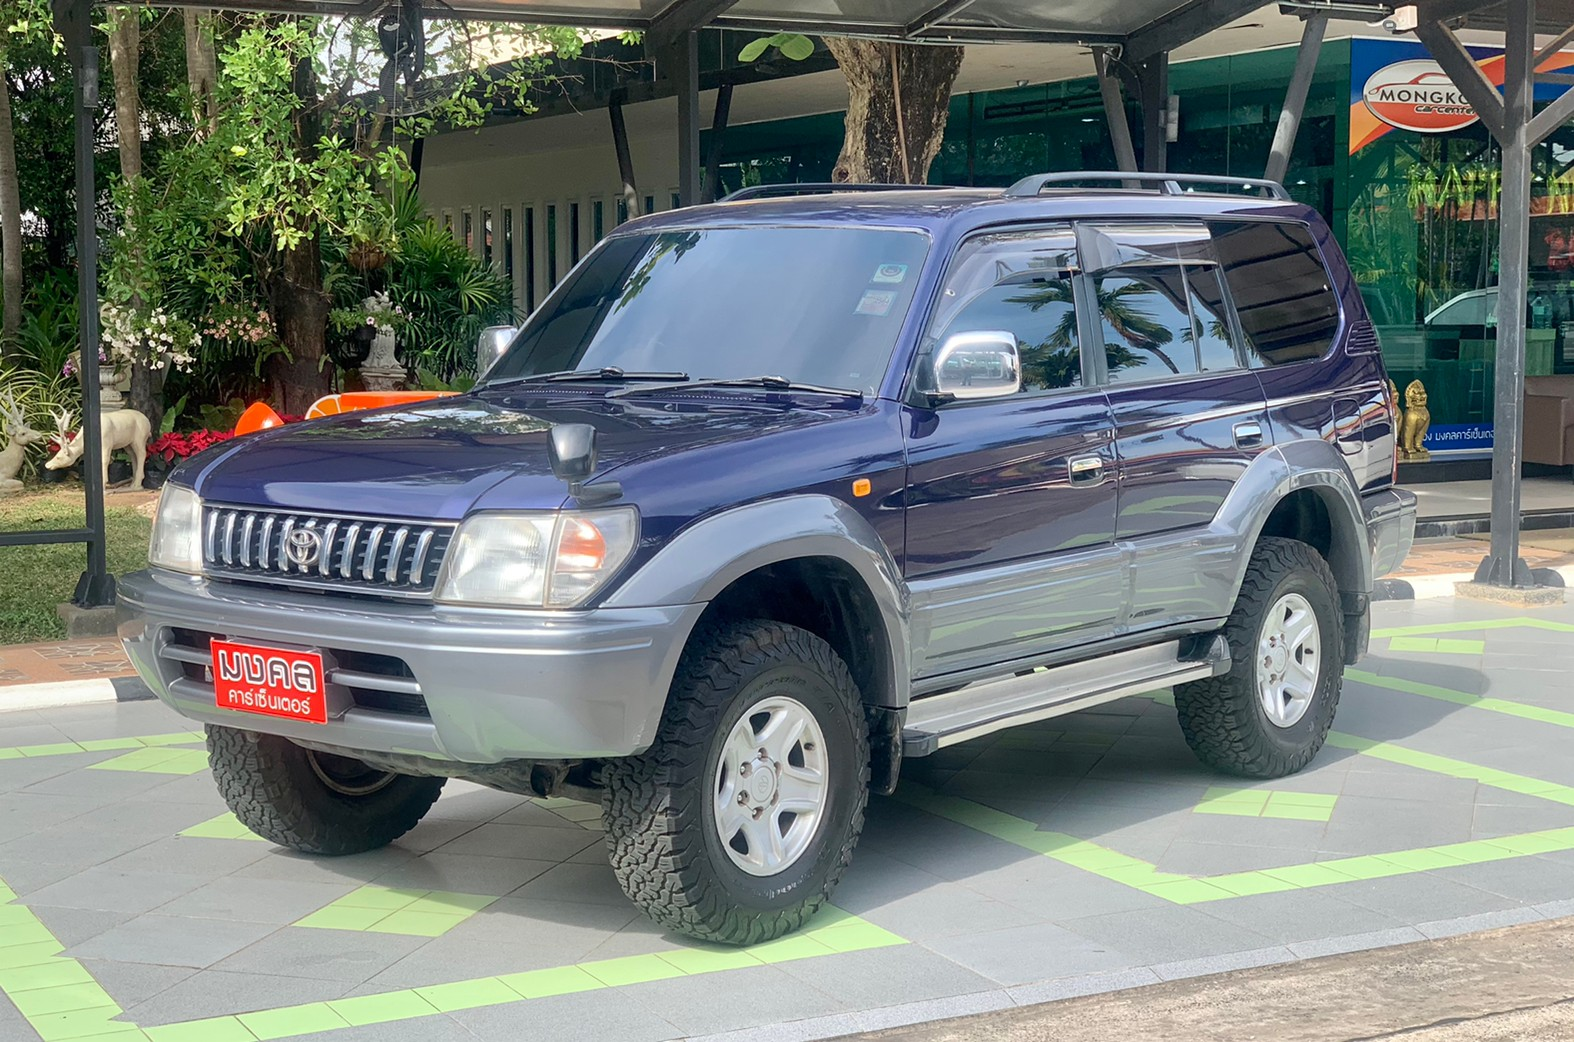 TOYOTA PRADO 95 3.4 V6 4WD AT 1997 (LC588)